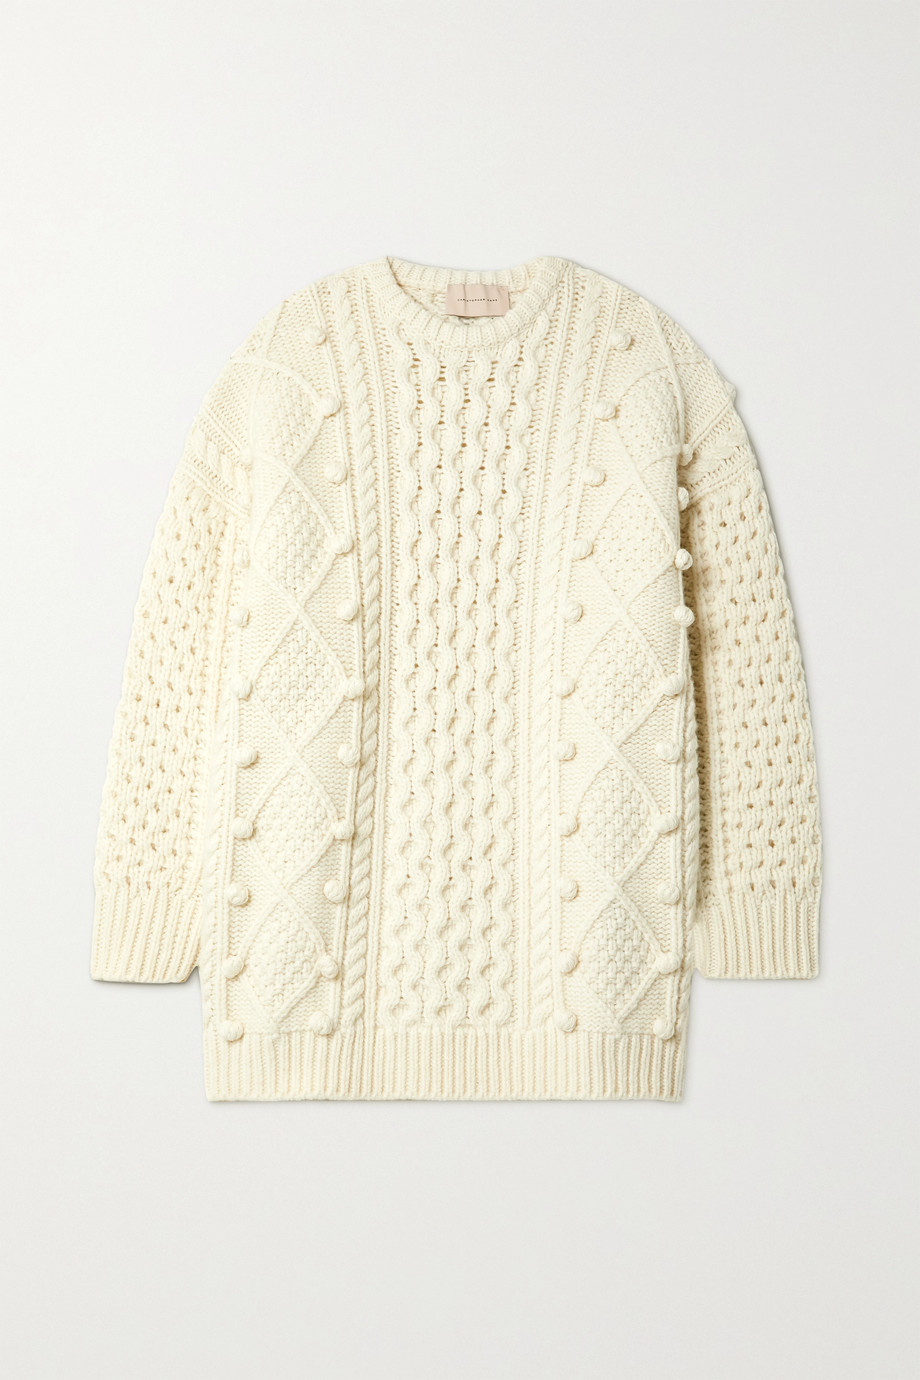 Christopher Kane Oversized cable-knit wool-blend sweater